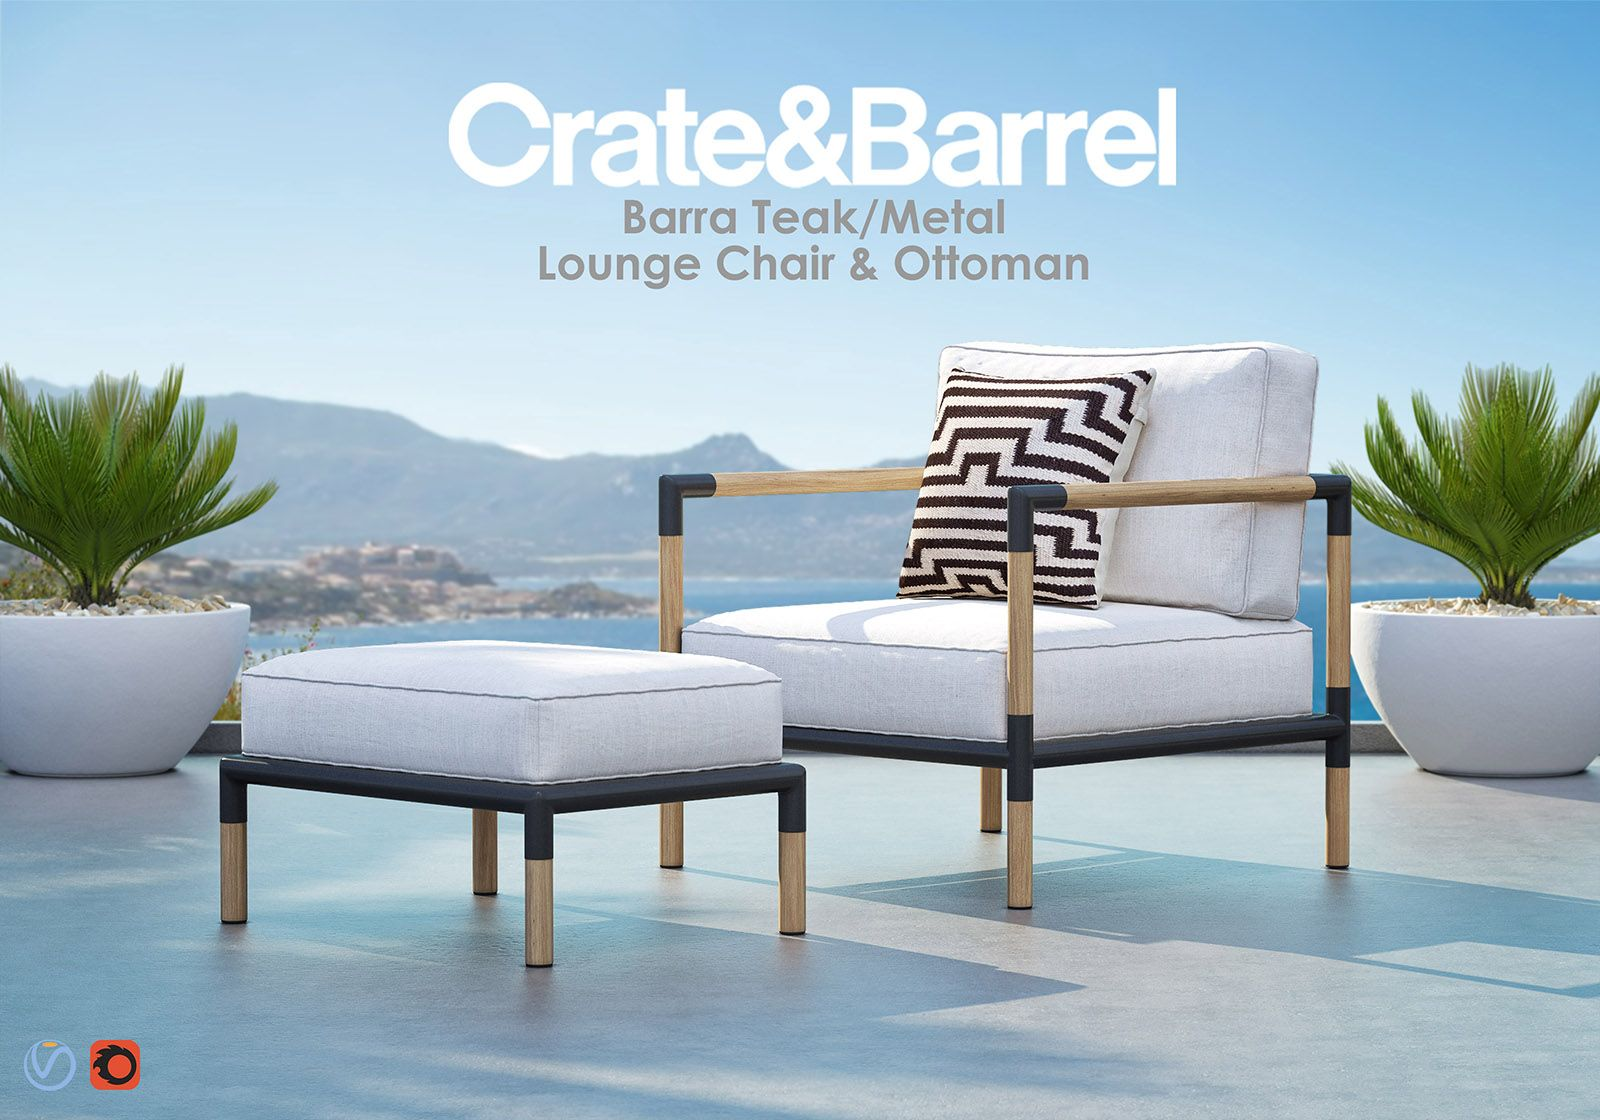 Barra Teak Metal Lounge With Ottoman From Crate Barrel